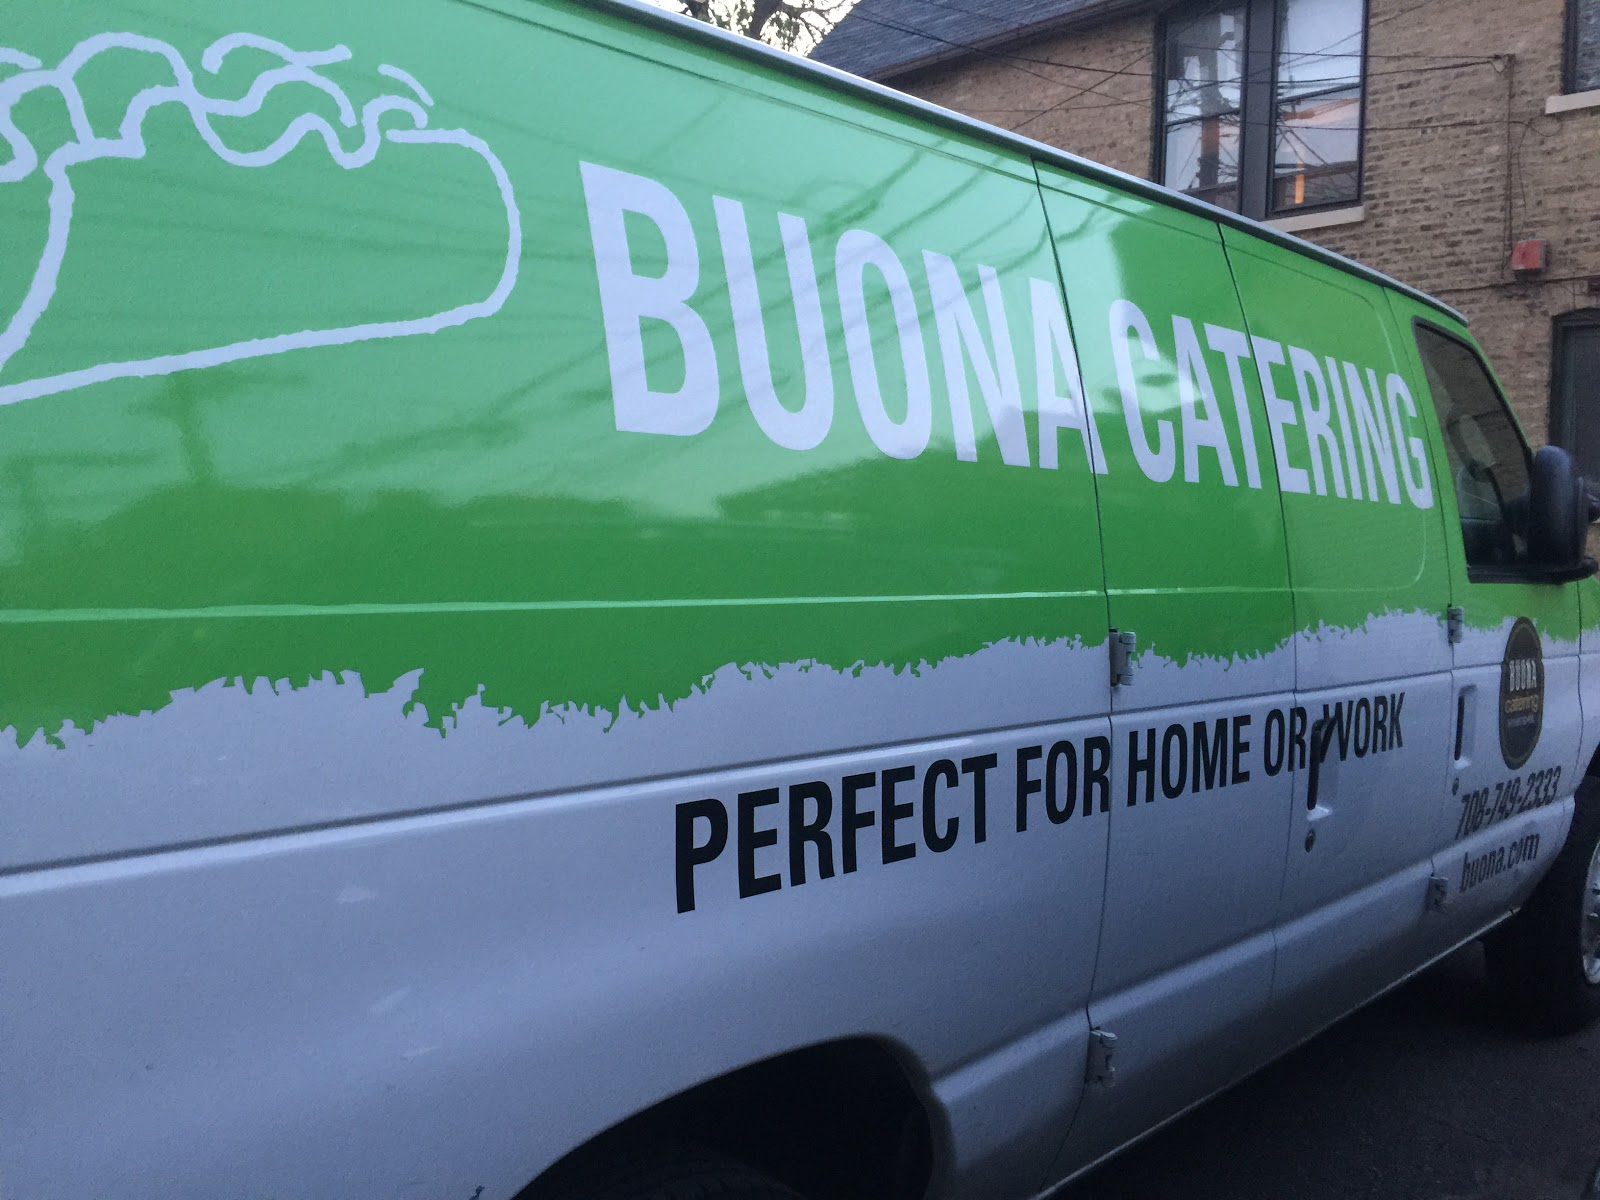 Buona beef catering coupons